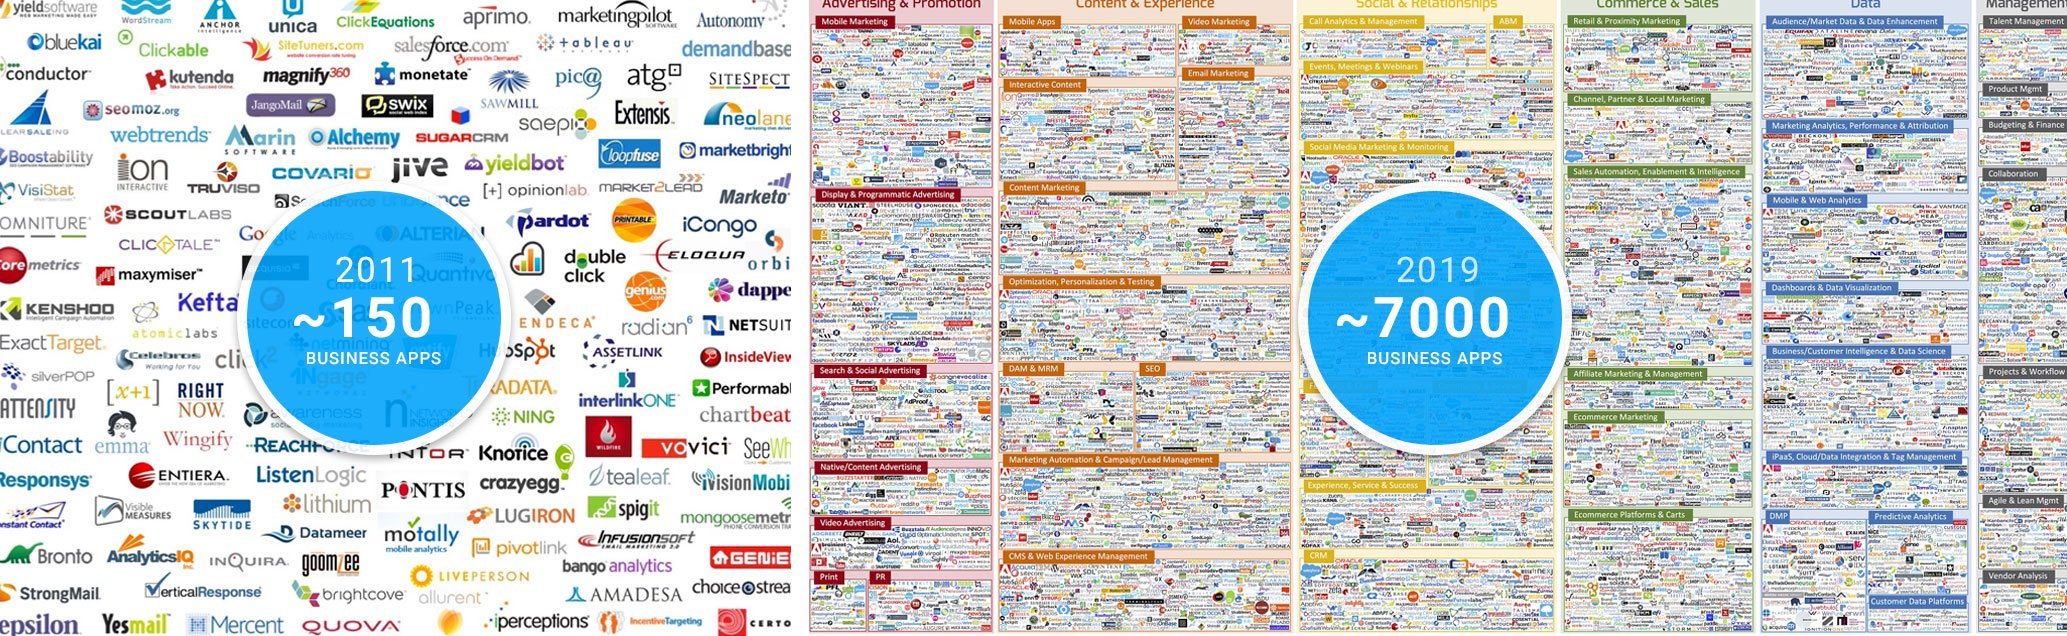 Infographic showing only 150 business apps in 2011 versus 7000 apps today